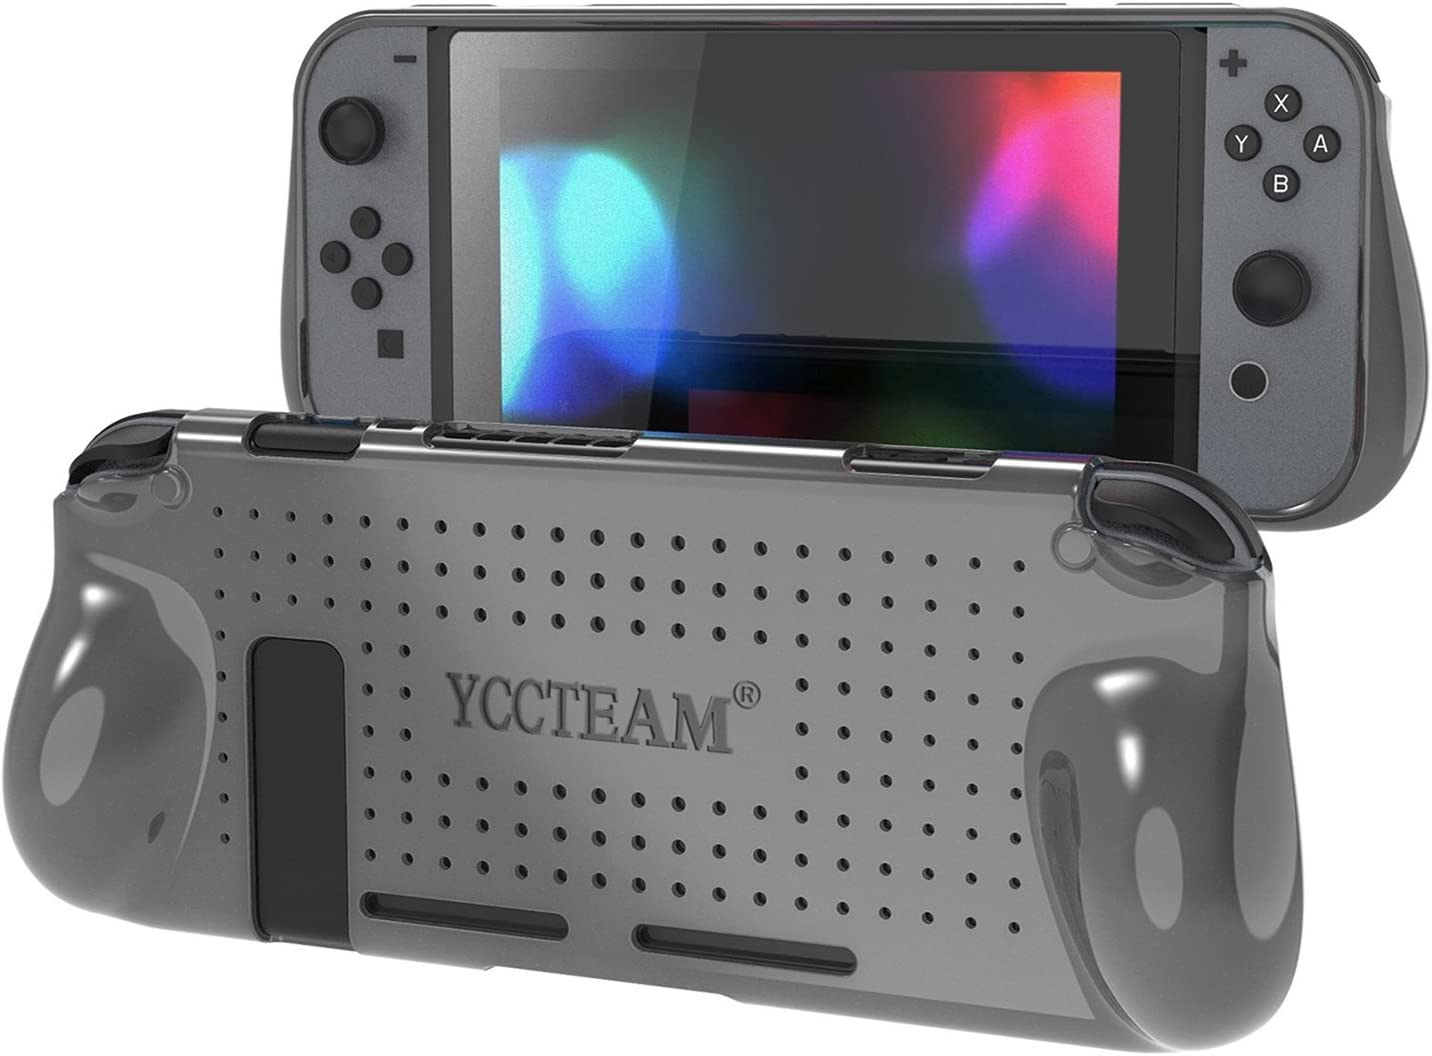 YCCTEAM Protective Case for Nintendo Switch, Heat Dissipation Comfortable Soft Shockproof Handheld Cover Grip Case Silicone Gel Rubber Full Body Protector for Gamepad Mode (Grey)